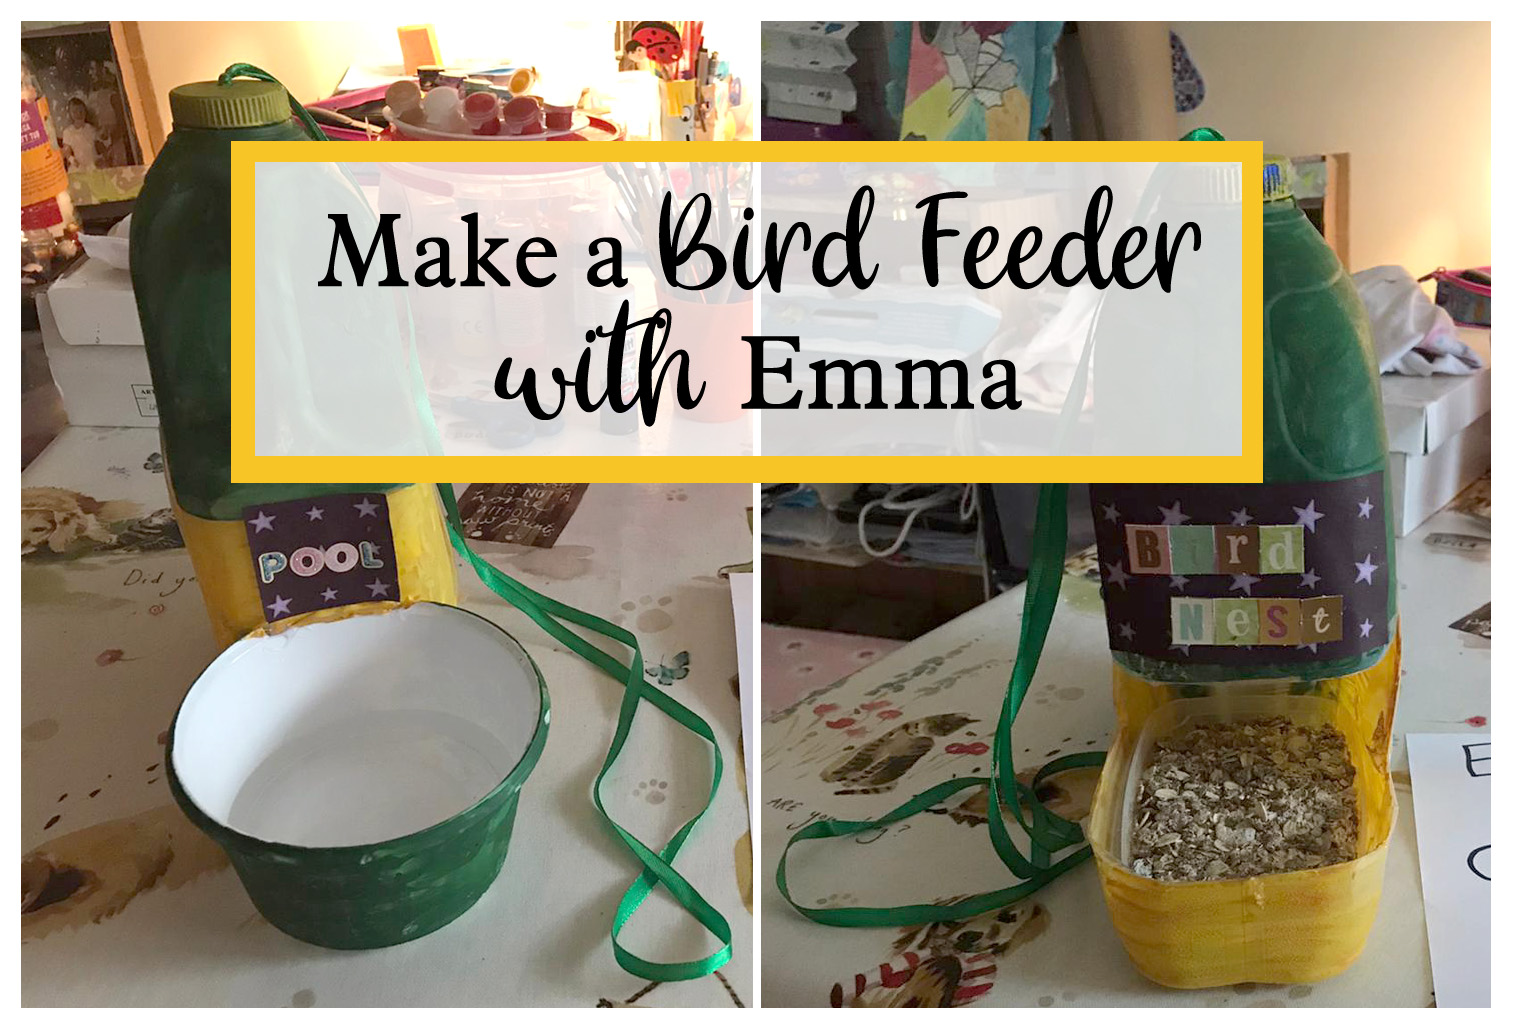 make a bird feeder with Emma guest presenting on The Craft Corner